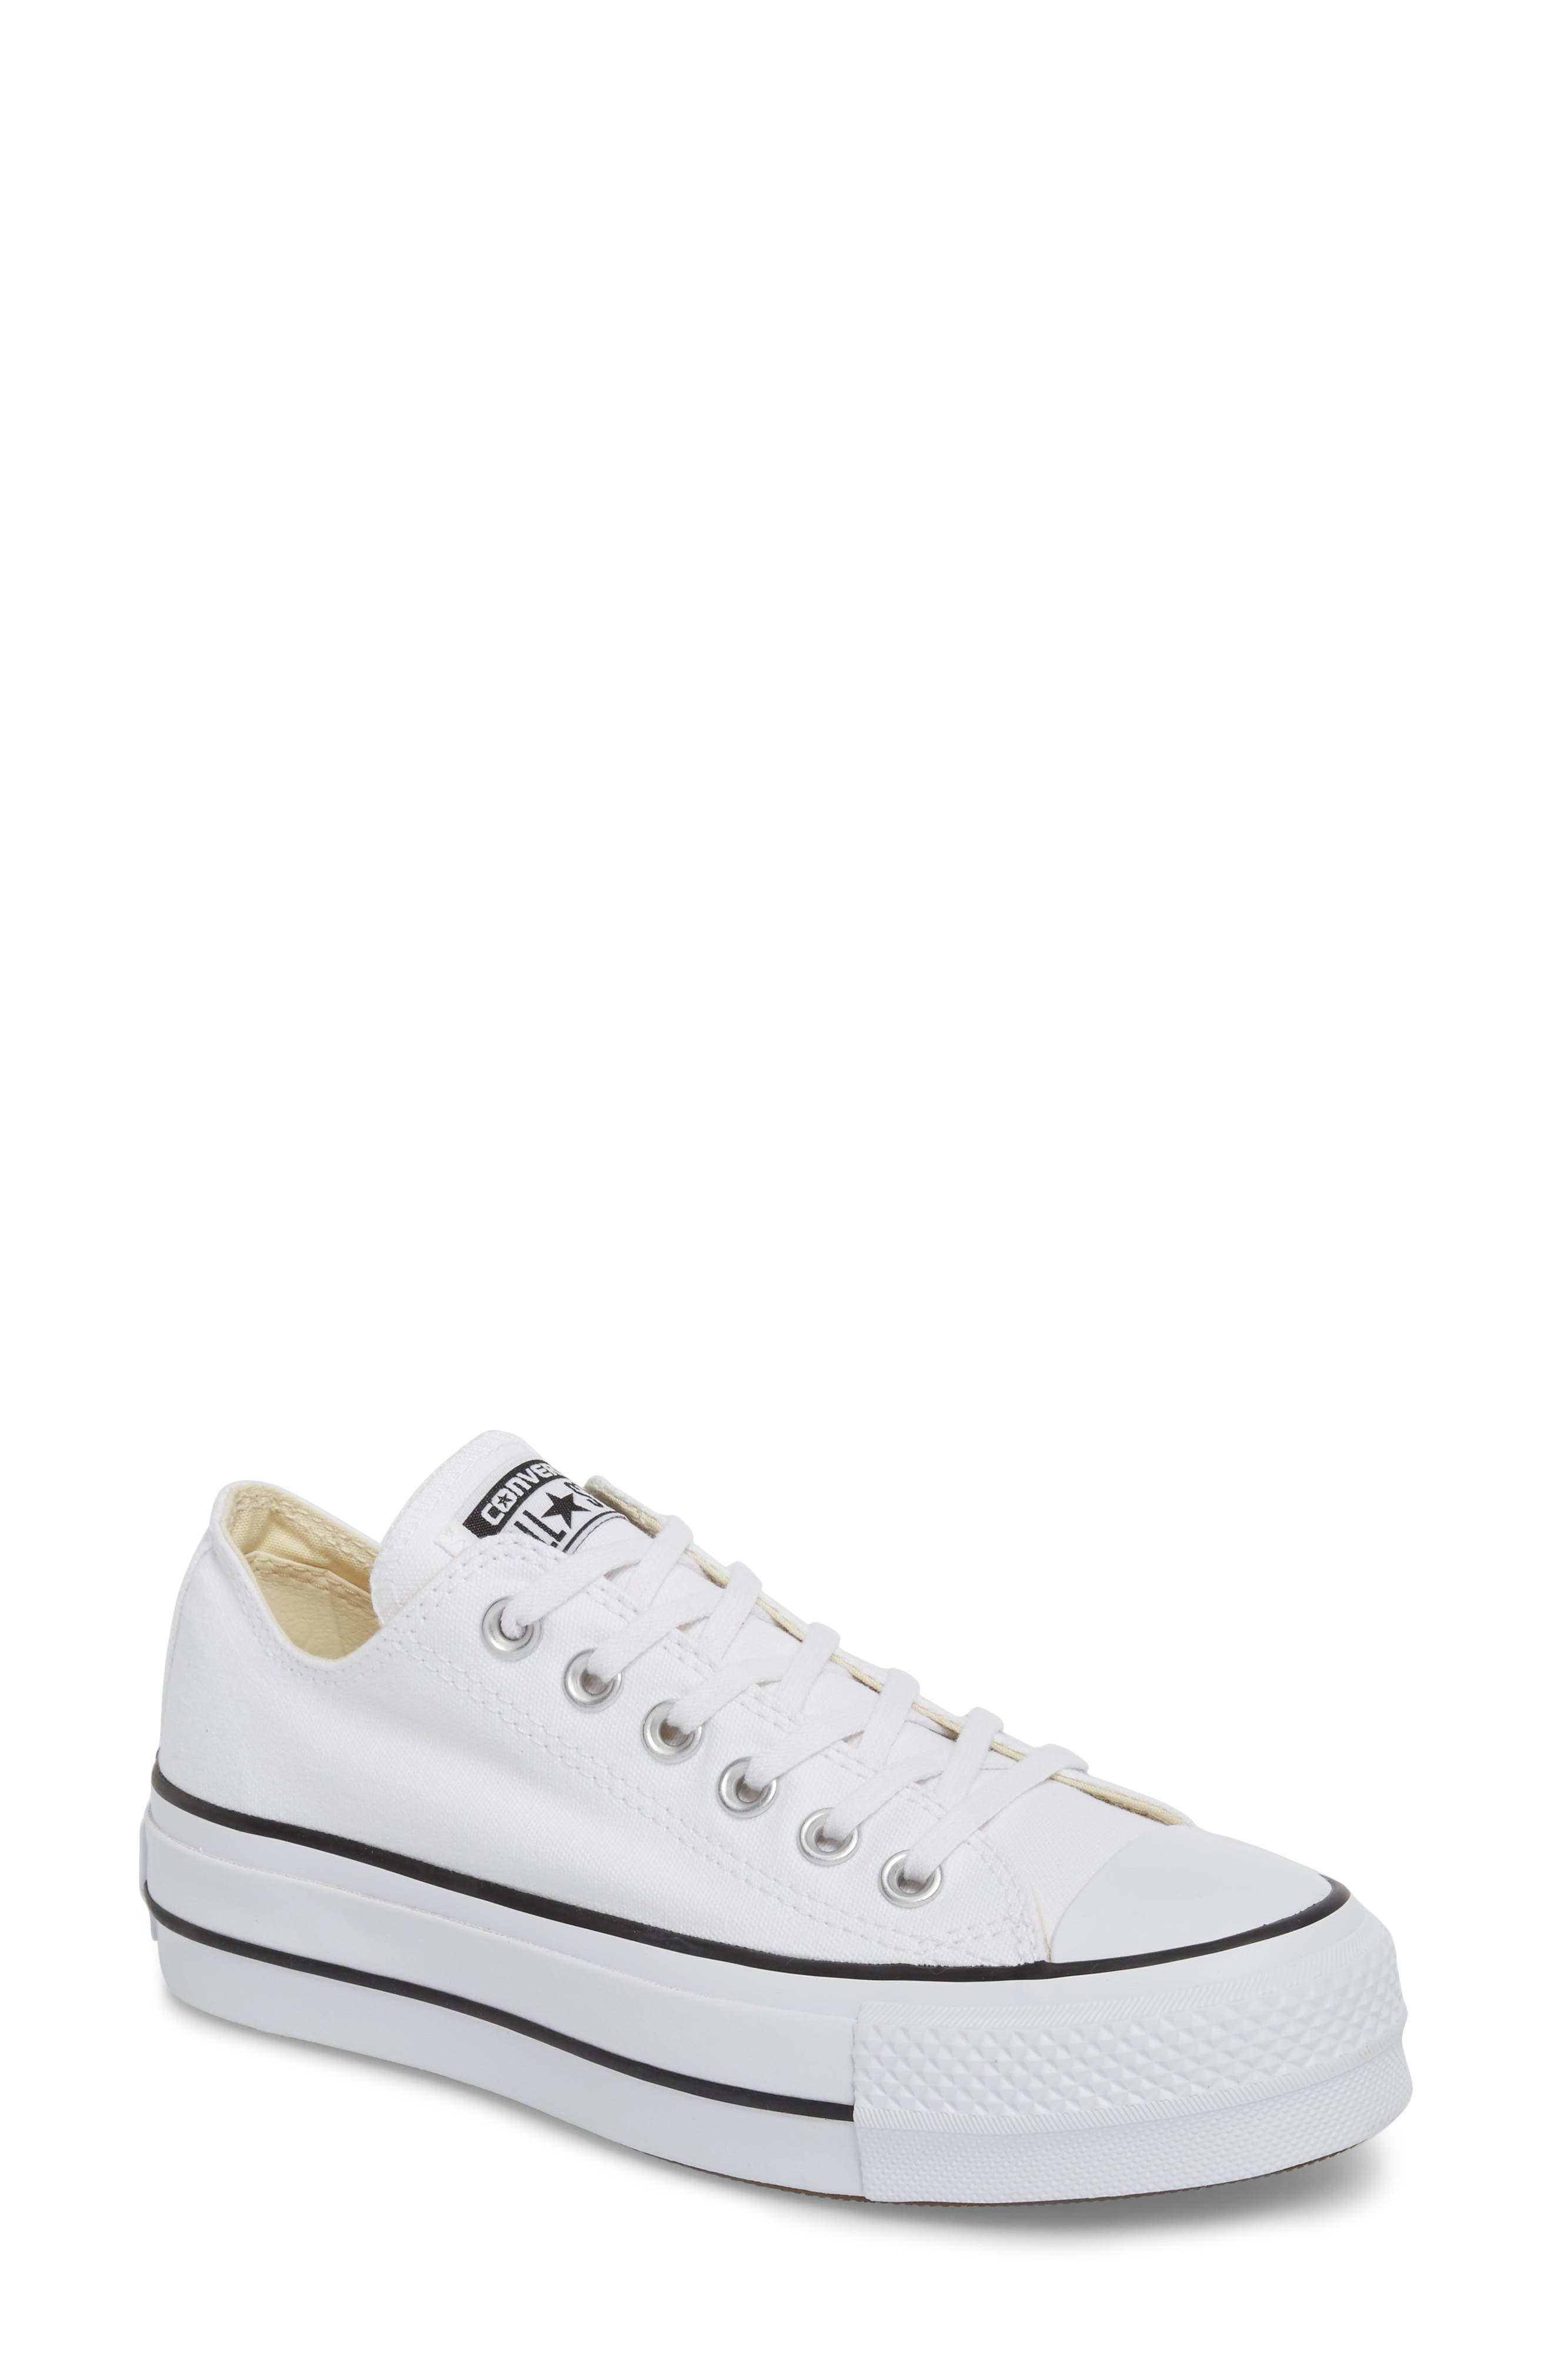 Chuck Taylor<sup>®</sup> All Star<sup>®</sup> Platform Sneaker,                         Main,                         color, White/ Black/ White